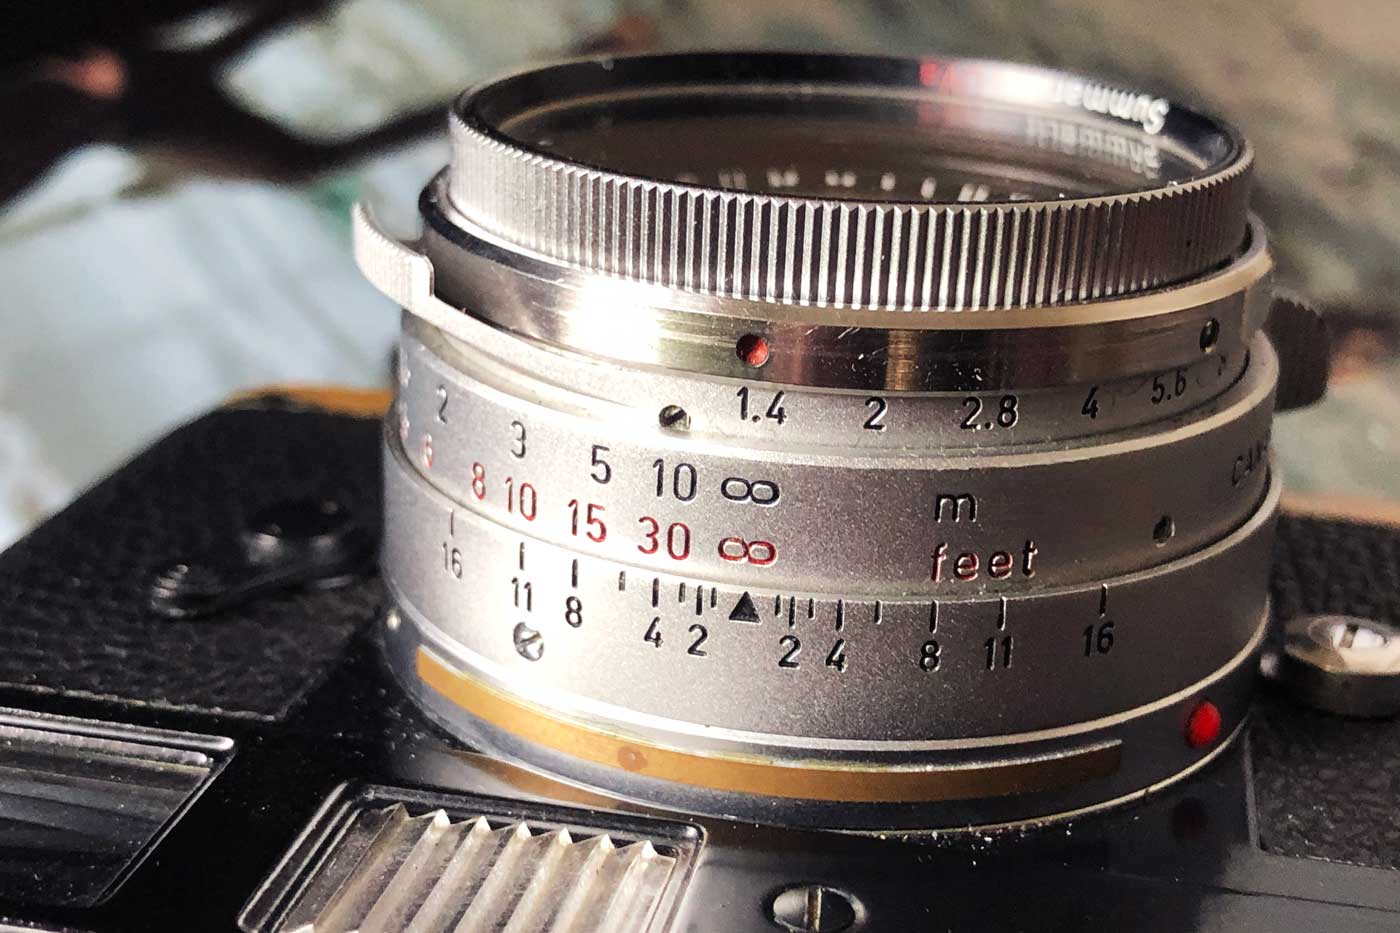 Leica-Summilux-35mm-35-1.4-f1.4-pre-a-asph-steel-rim-v1-version-1-steel-rim-lens-review-camera-film-gear-lenses-character-samples-ollux-engravement-scale